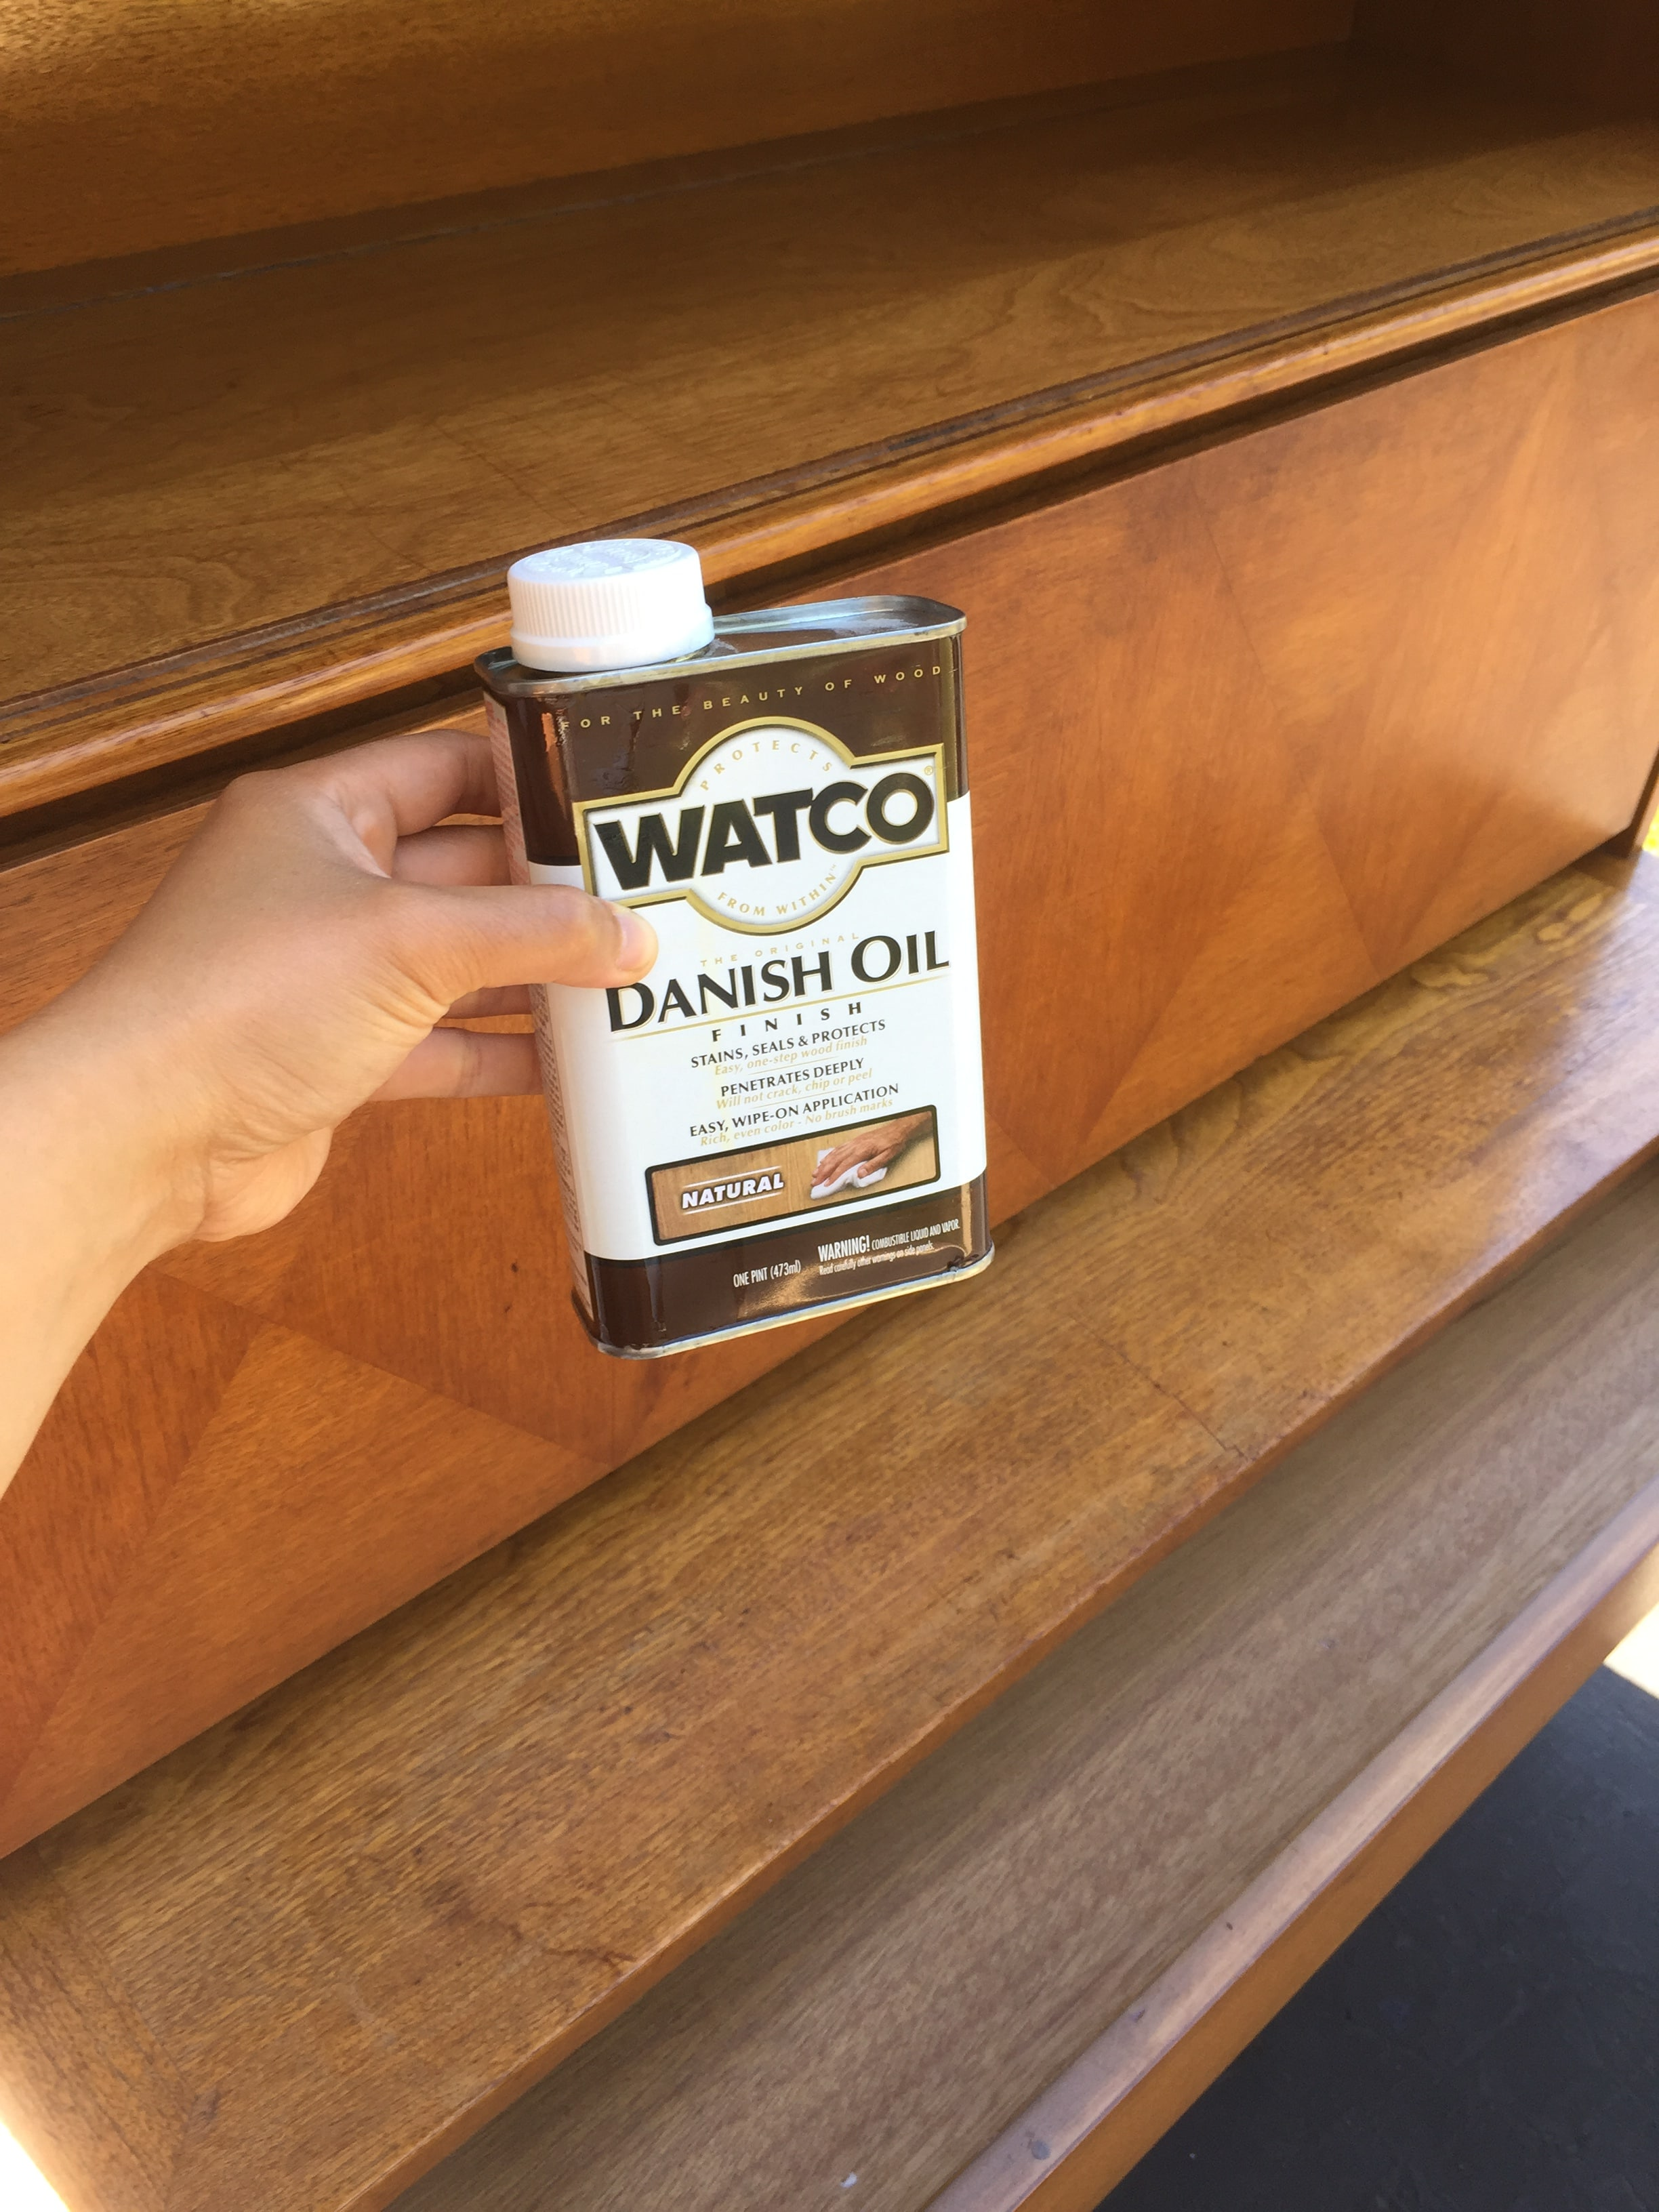 Recovering some old furniture with Danish oil.